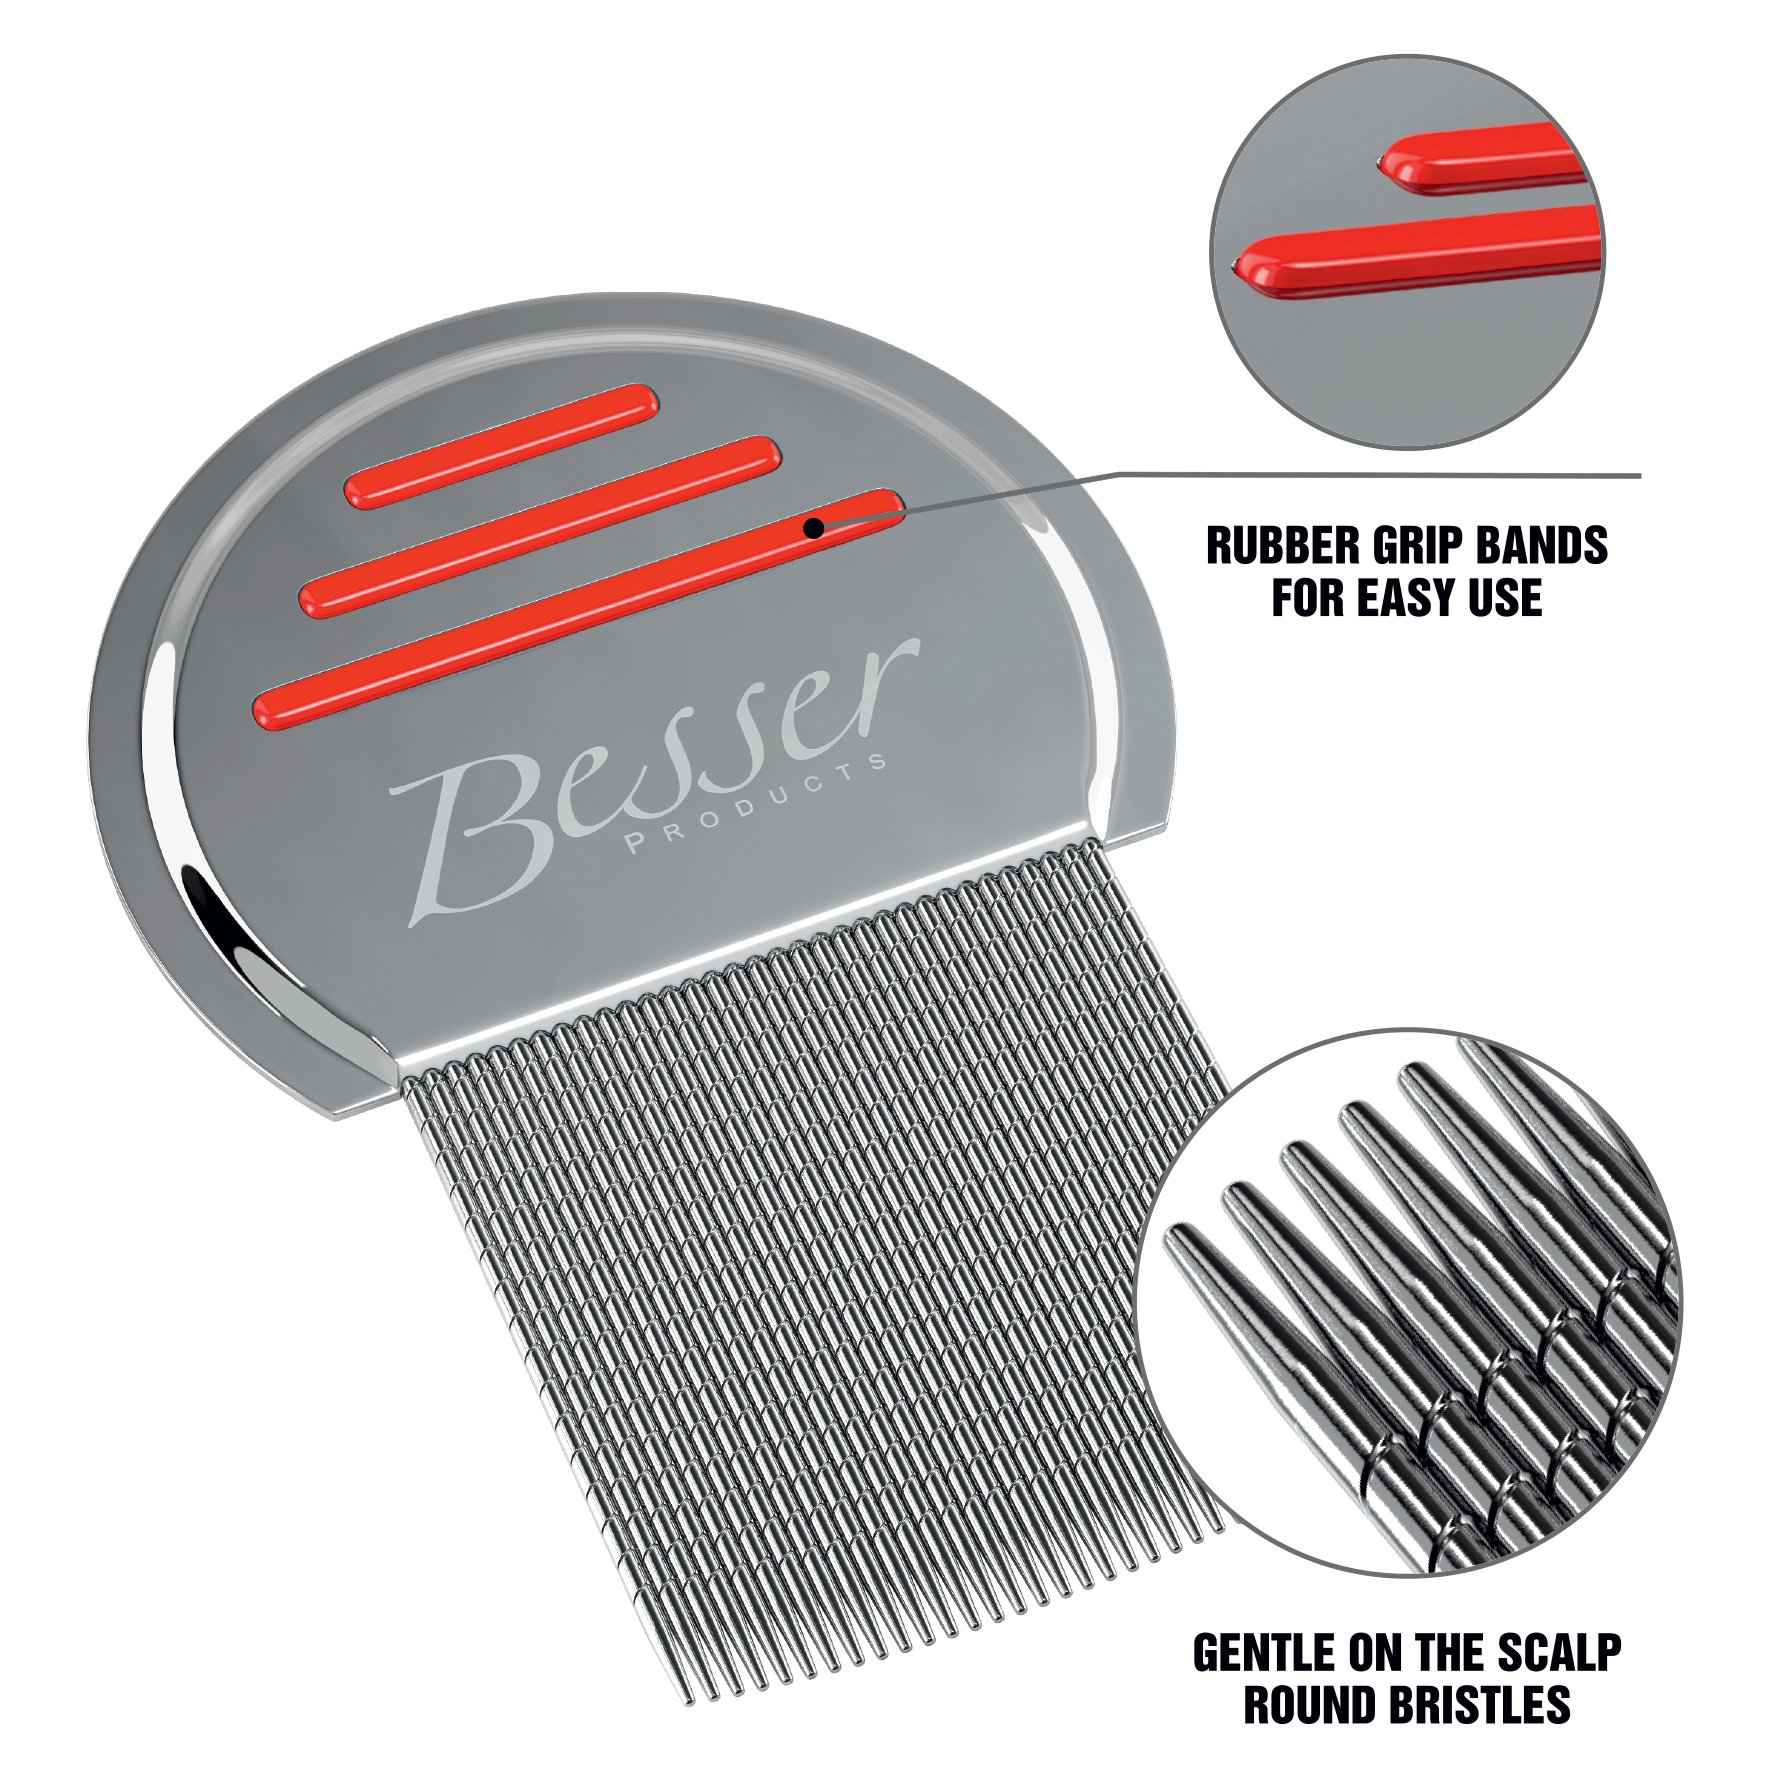 Stainless Steel Head Lice Comb - Pro Grade Louse and Nit Removal - Grooved, Rounded Teeth for Comfort and Best Results - Colors May Vary - by Besser Products (3) by Besser Products